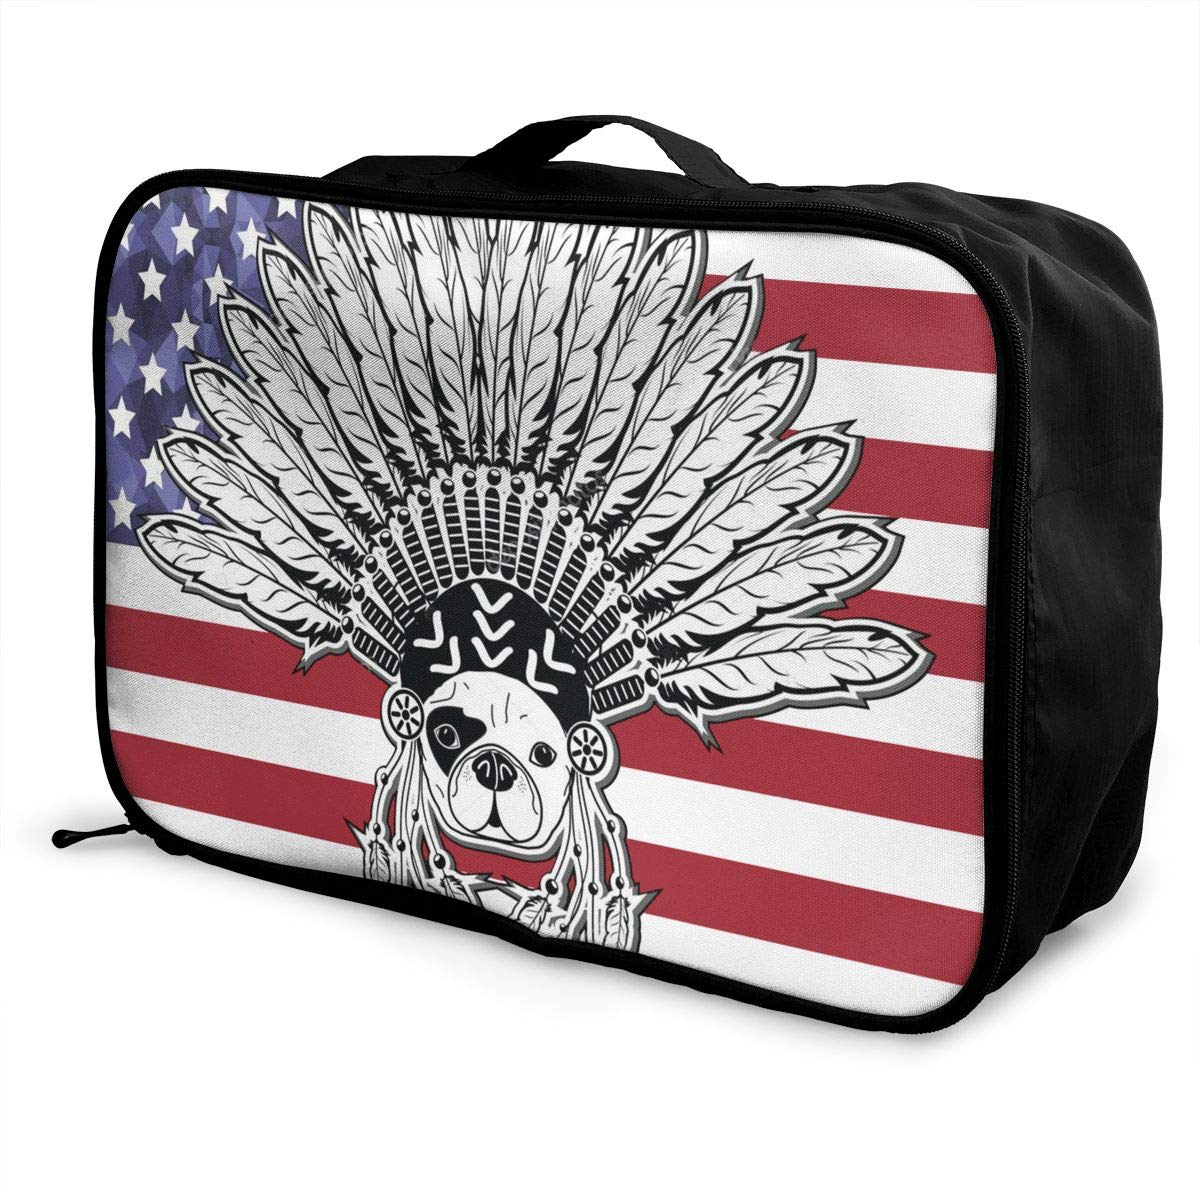 Warrior Style French Bulldog With Tribal Headdress Travel Bag Portable Luggage Bags Duffle Bag Large Capacity Travel Organizer Bag